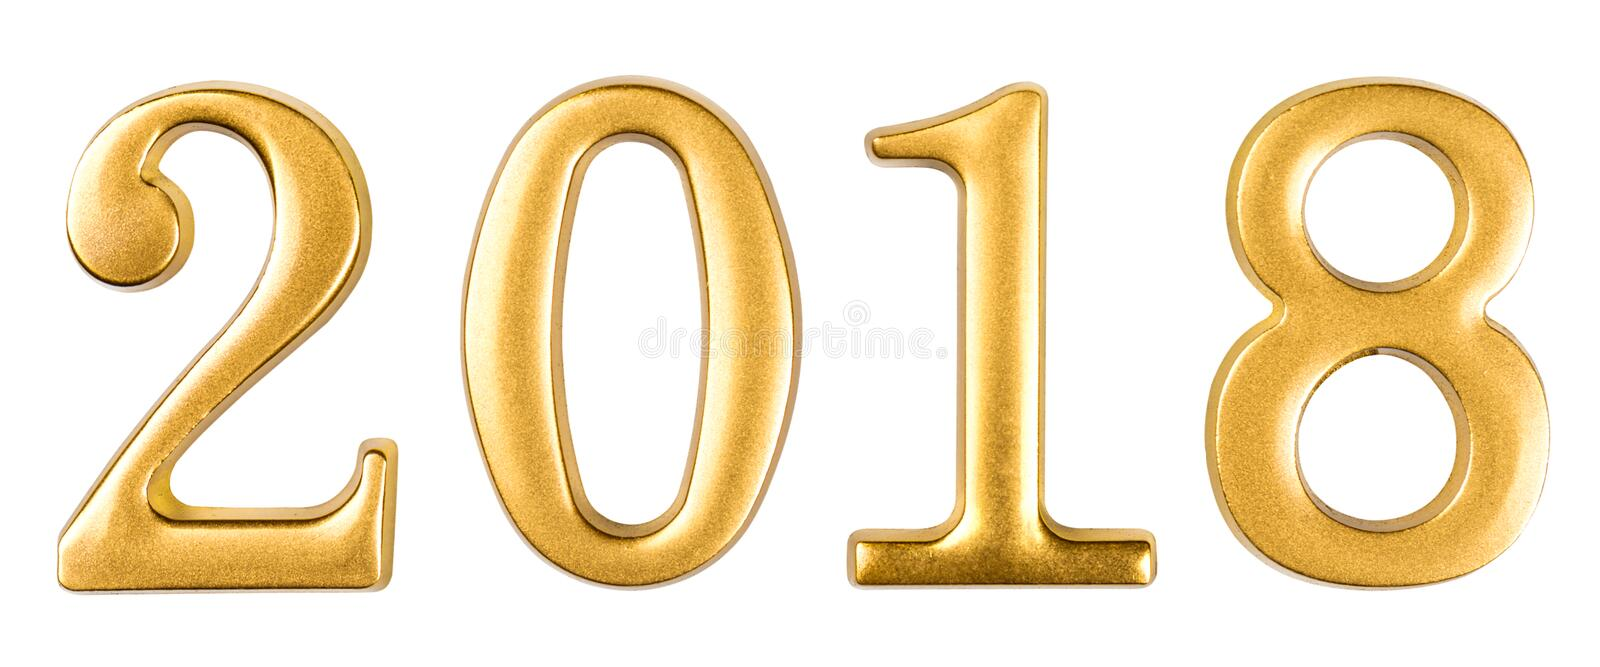 Gold numbers 2018 isolated on white stock photography